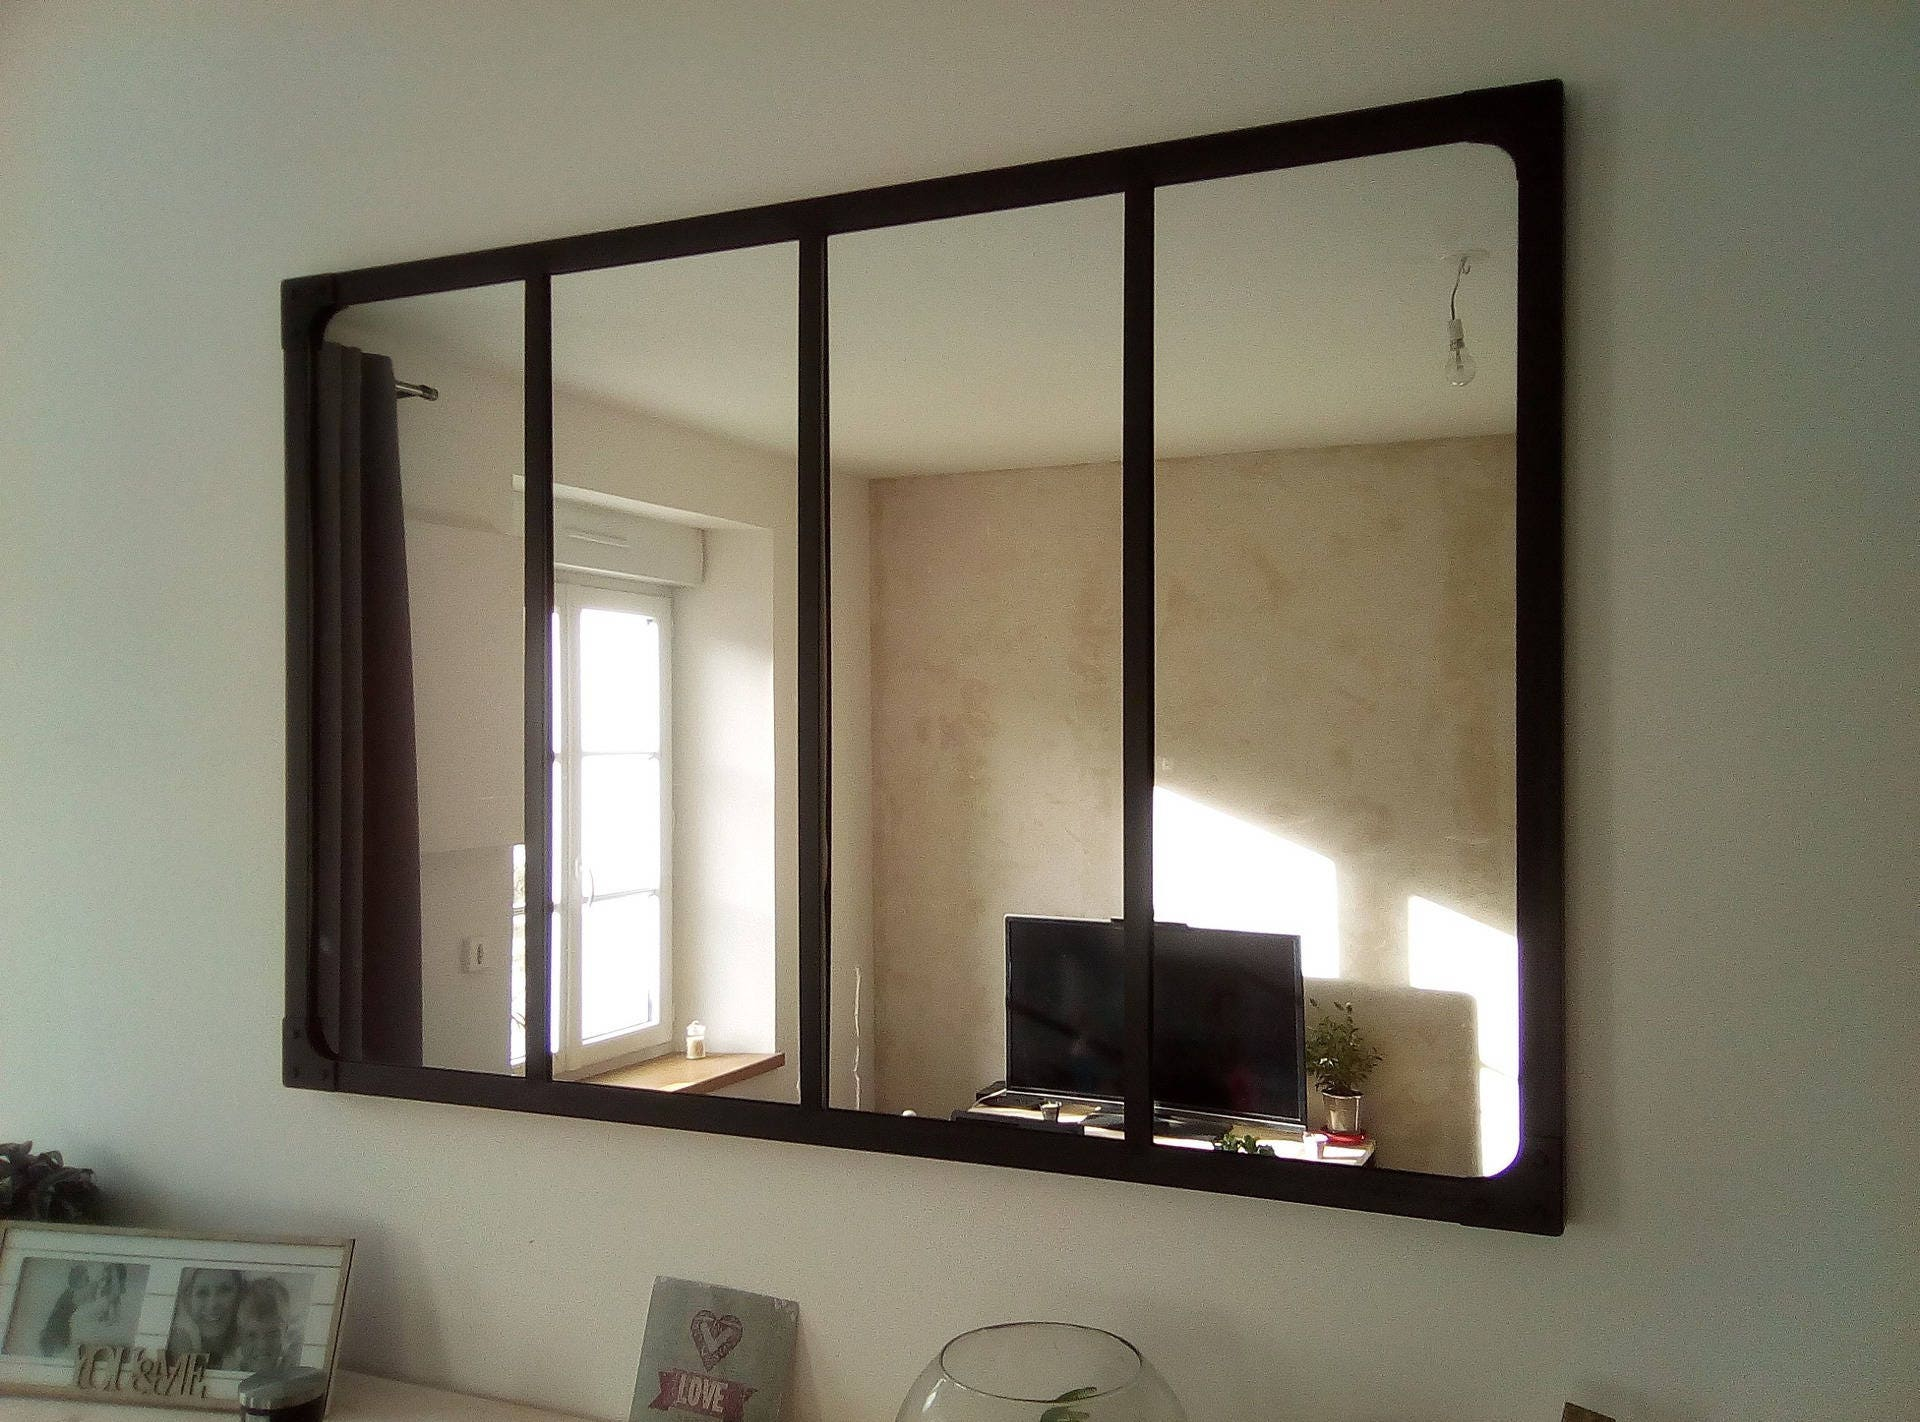 Miroir style verri re industriel 120x80 cm for Miroir verriere